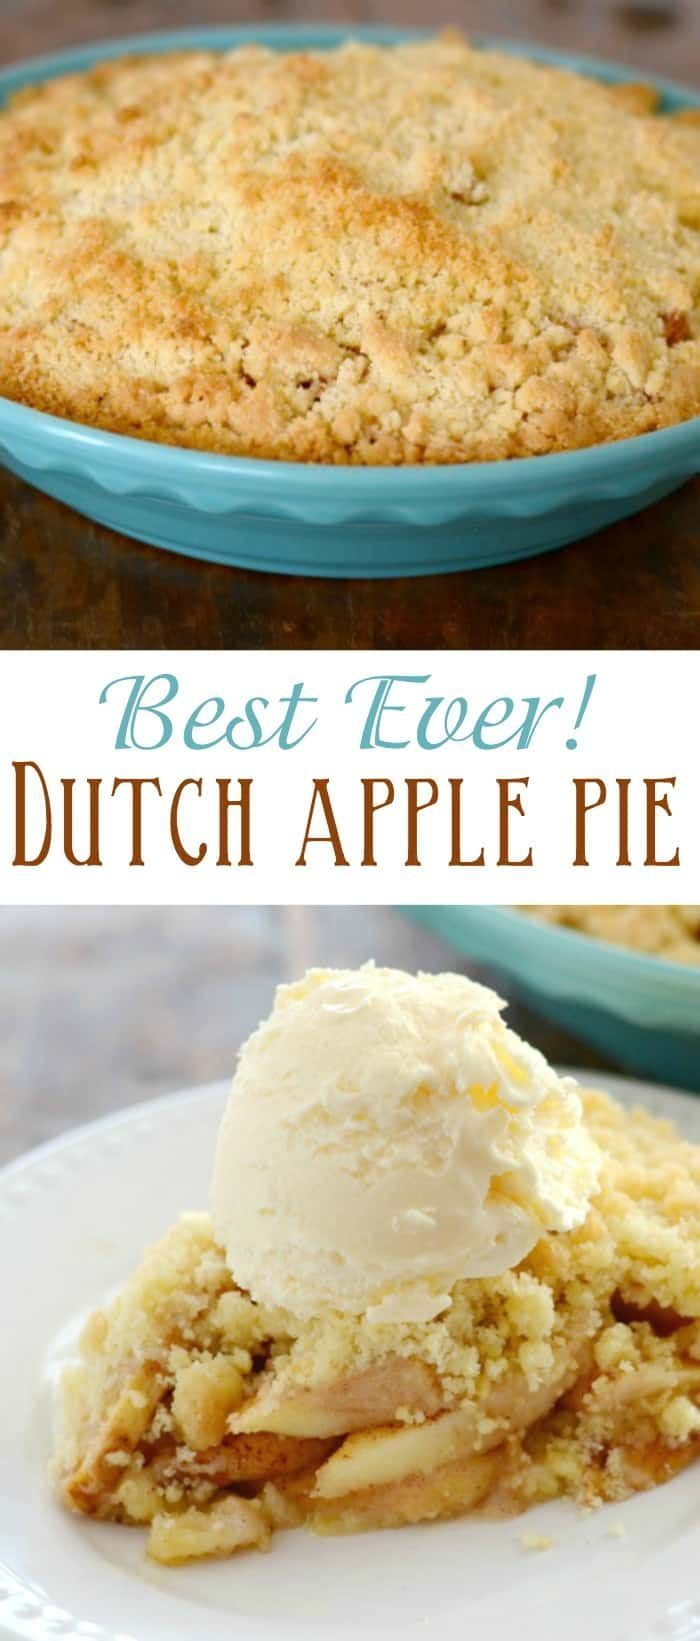 This is the best recipe for Dutch Apple Pie ever! We call it Evil Apple Pie, and it is simply divine! #applepie #dutchapplepie #applecrumbpie #applestreuselpie #bestapplepie #creationsbykara #applepie